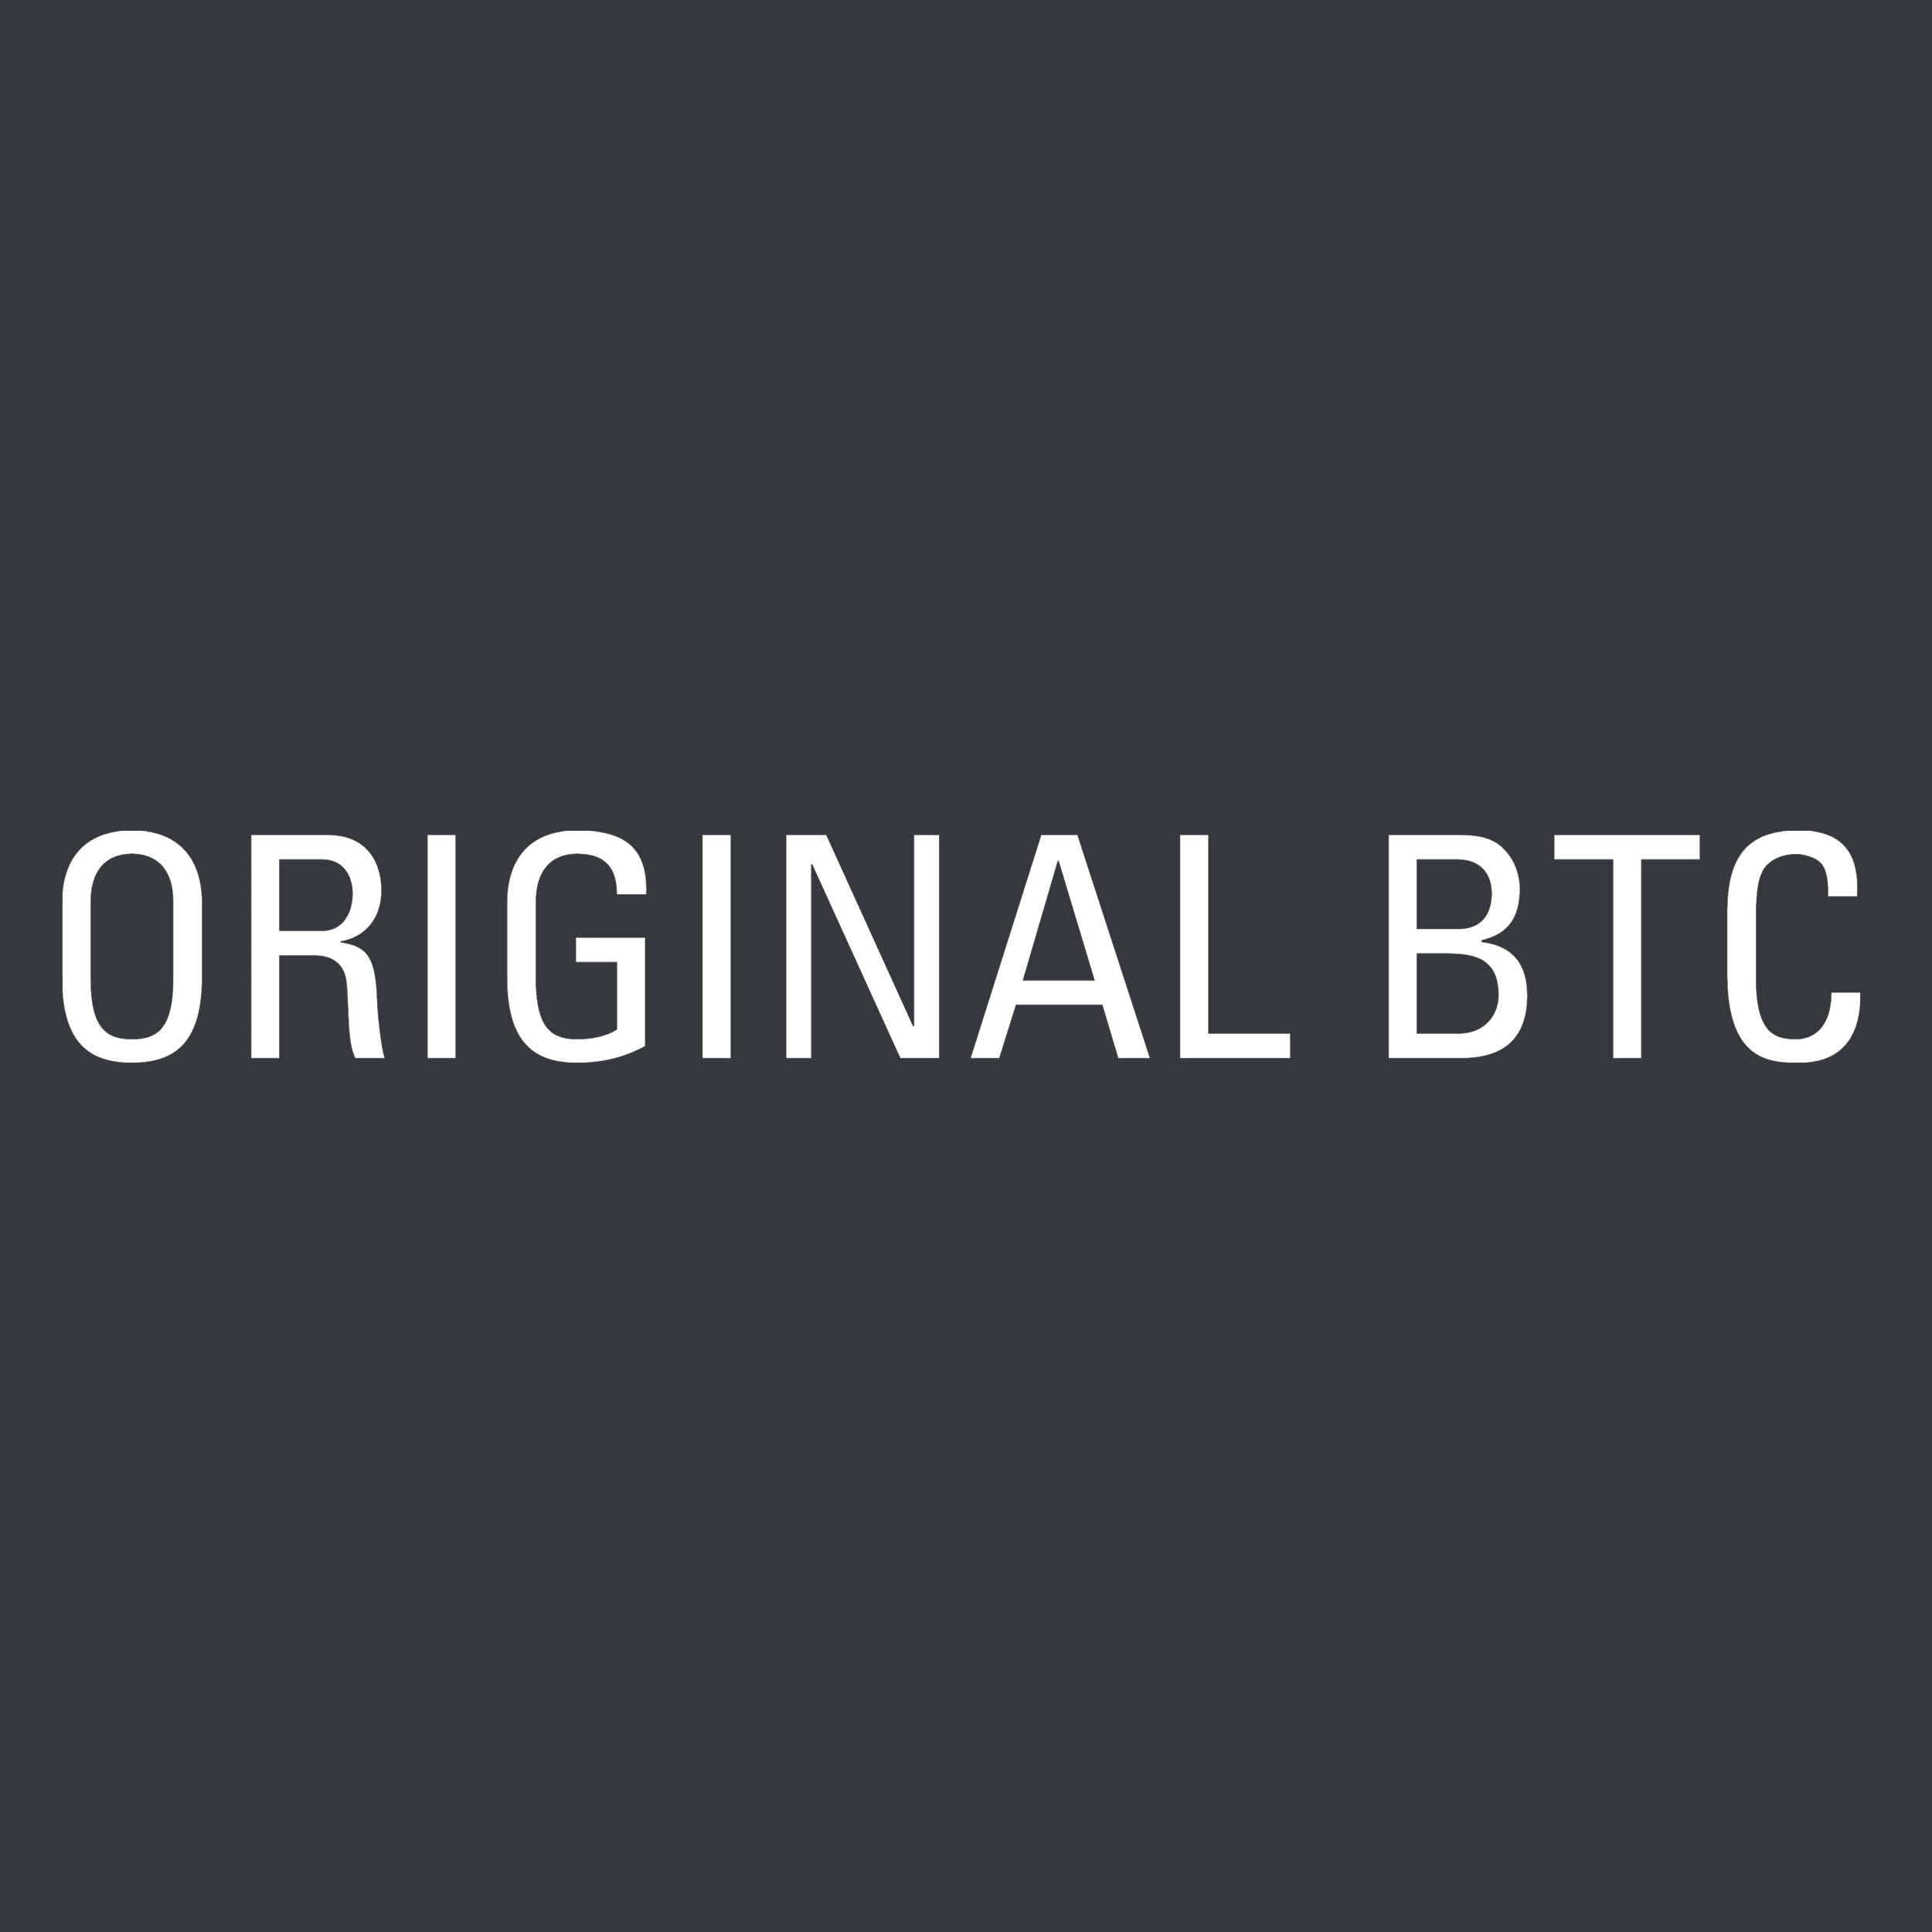 Original btc social media logo